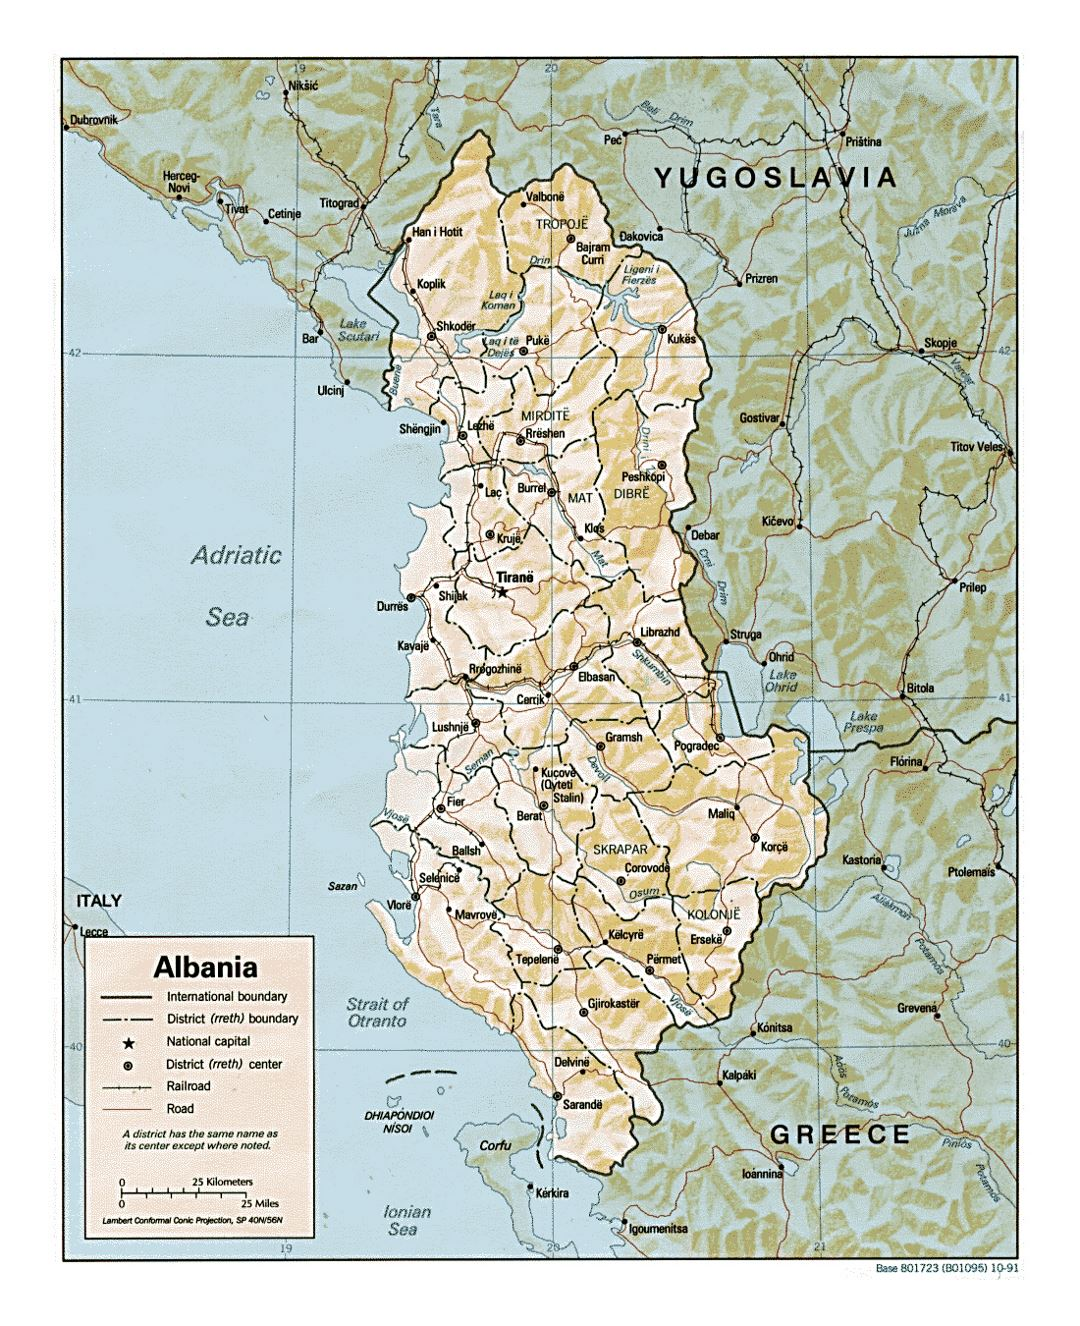 Detailed political and administrative map of Albania with relief, roads and cities - 1991